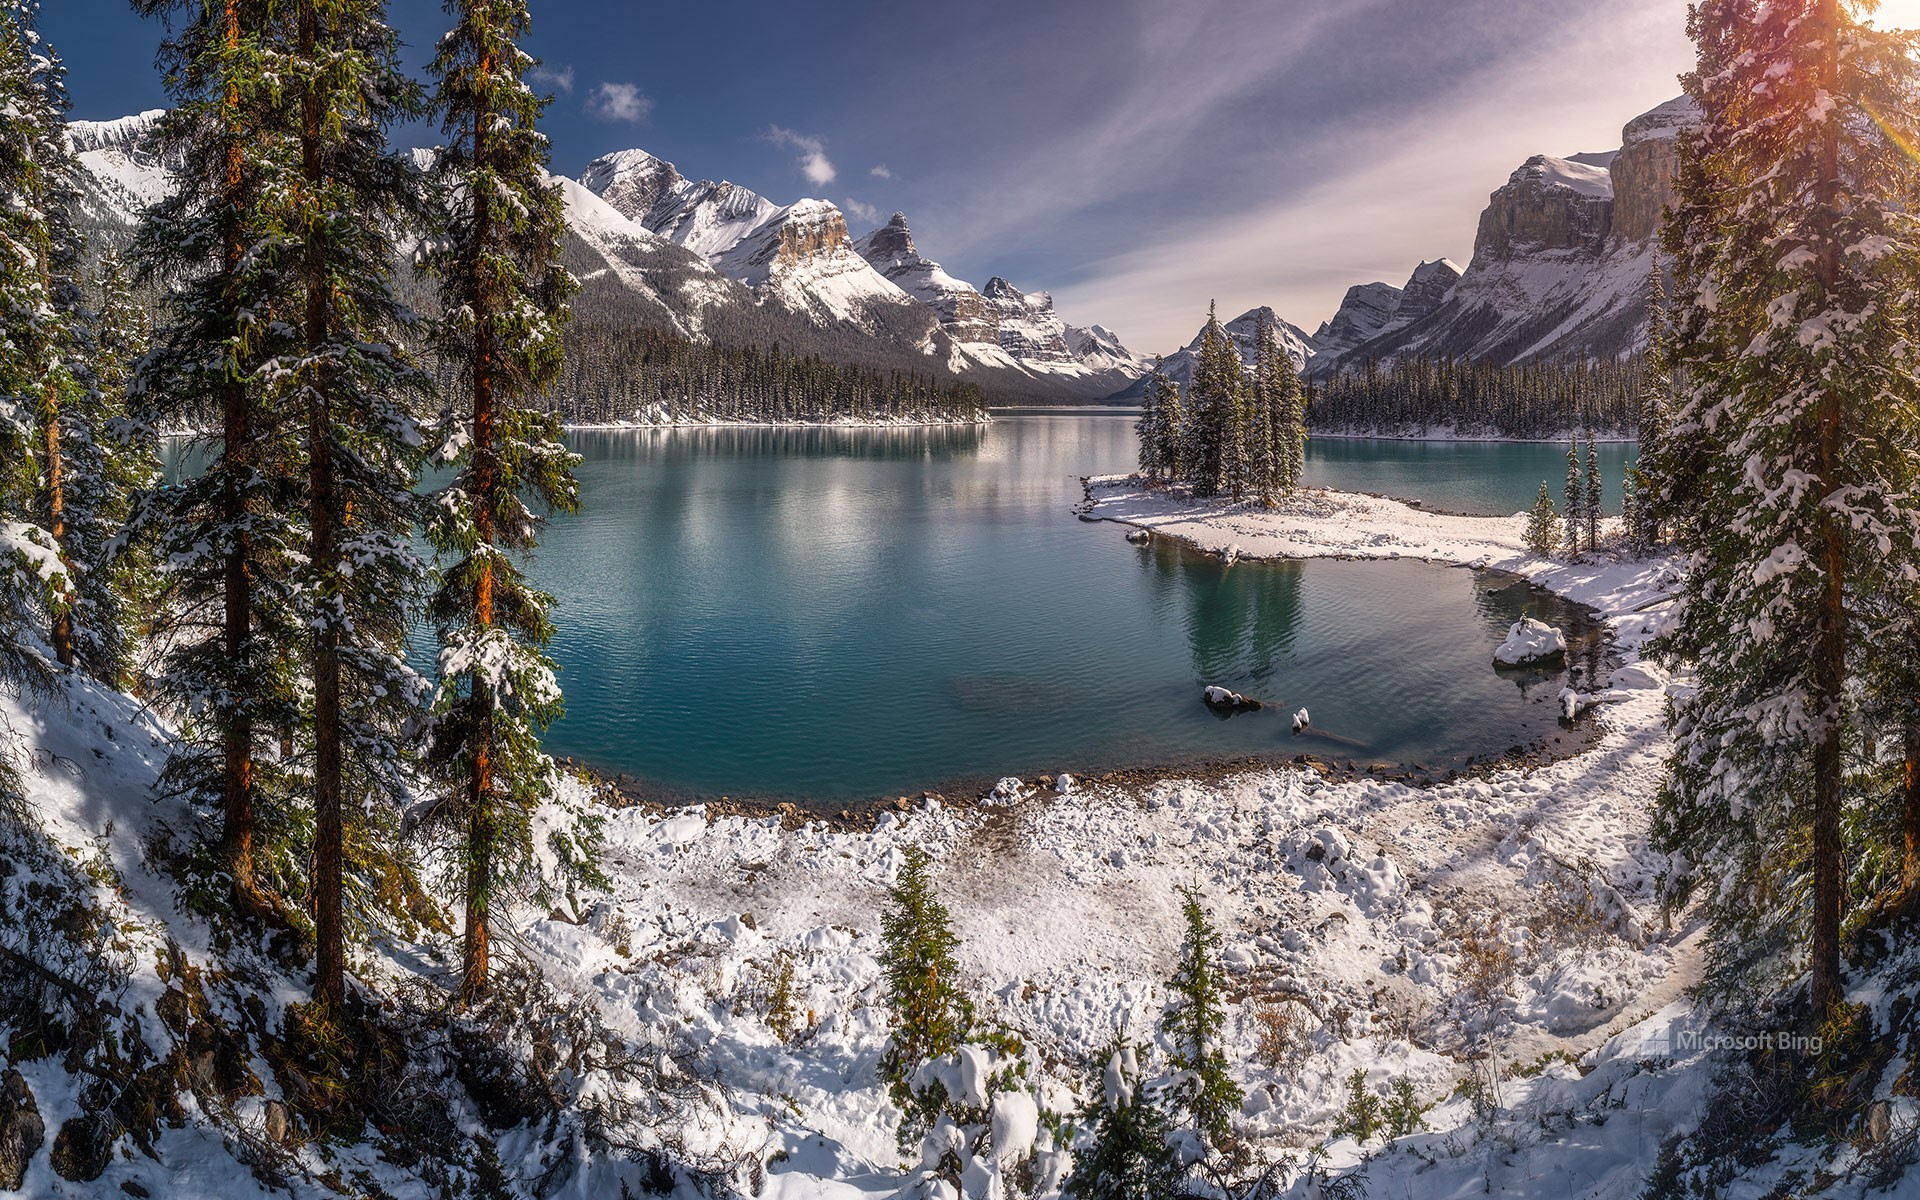 Spirit Island during winter season, Maligne Lake, Jasper National Park, Alberta